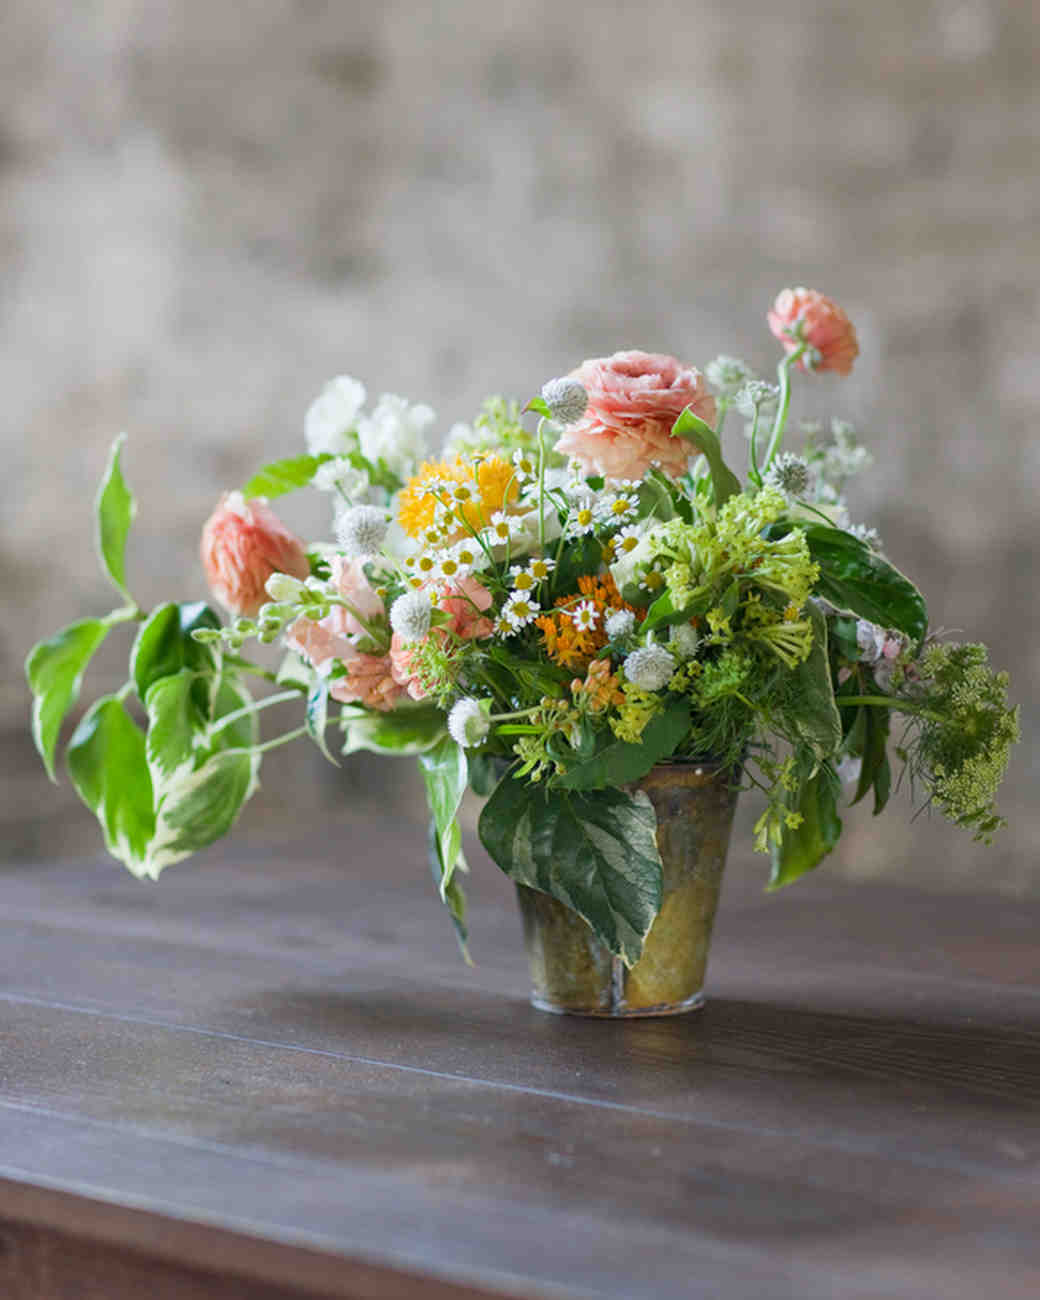 maggie-bryan-table-flowers-0015-wd108897.jpg